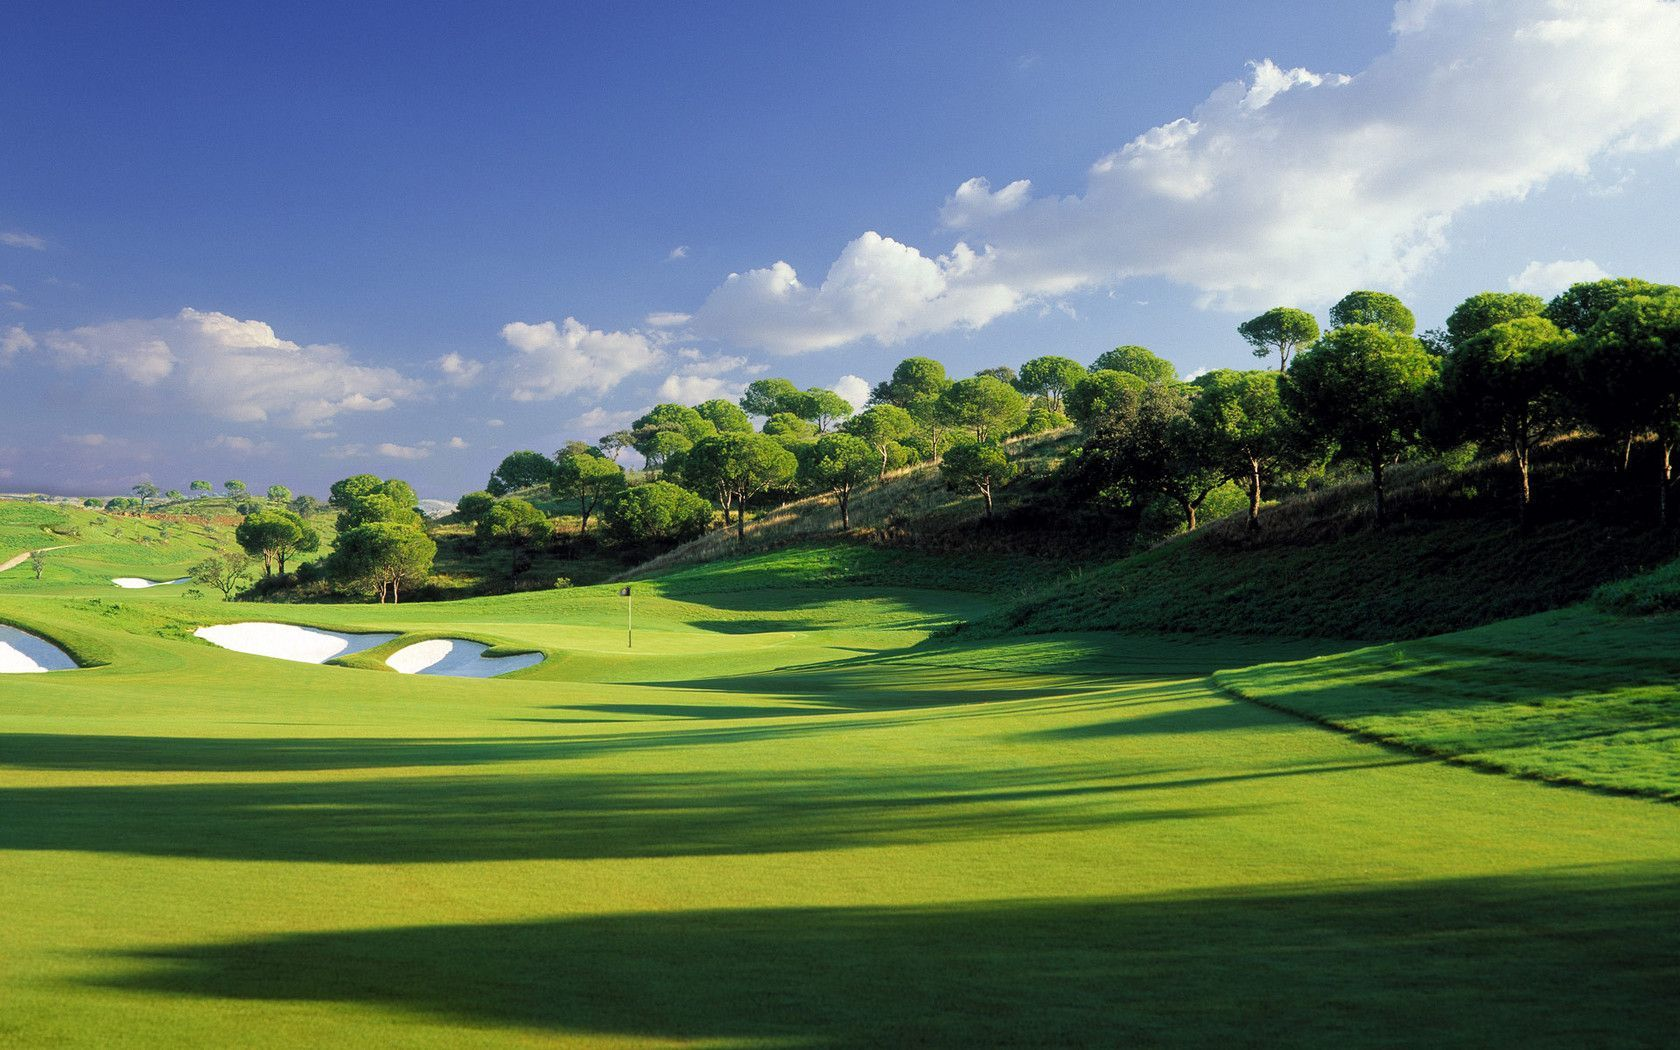 Titanic Deluxe Belek Golf Course 1275001 Hd Wallpaper